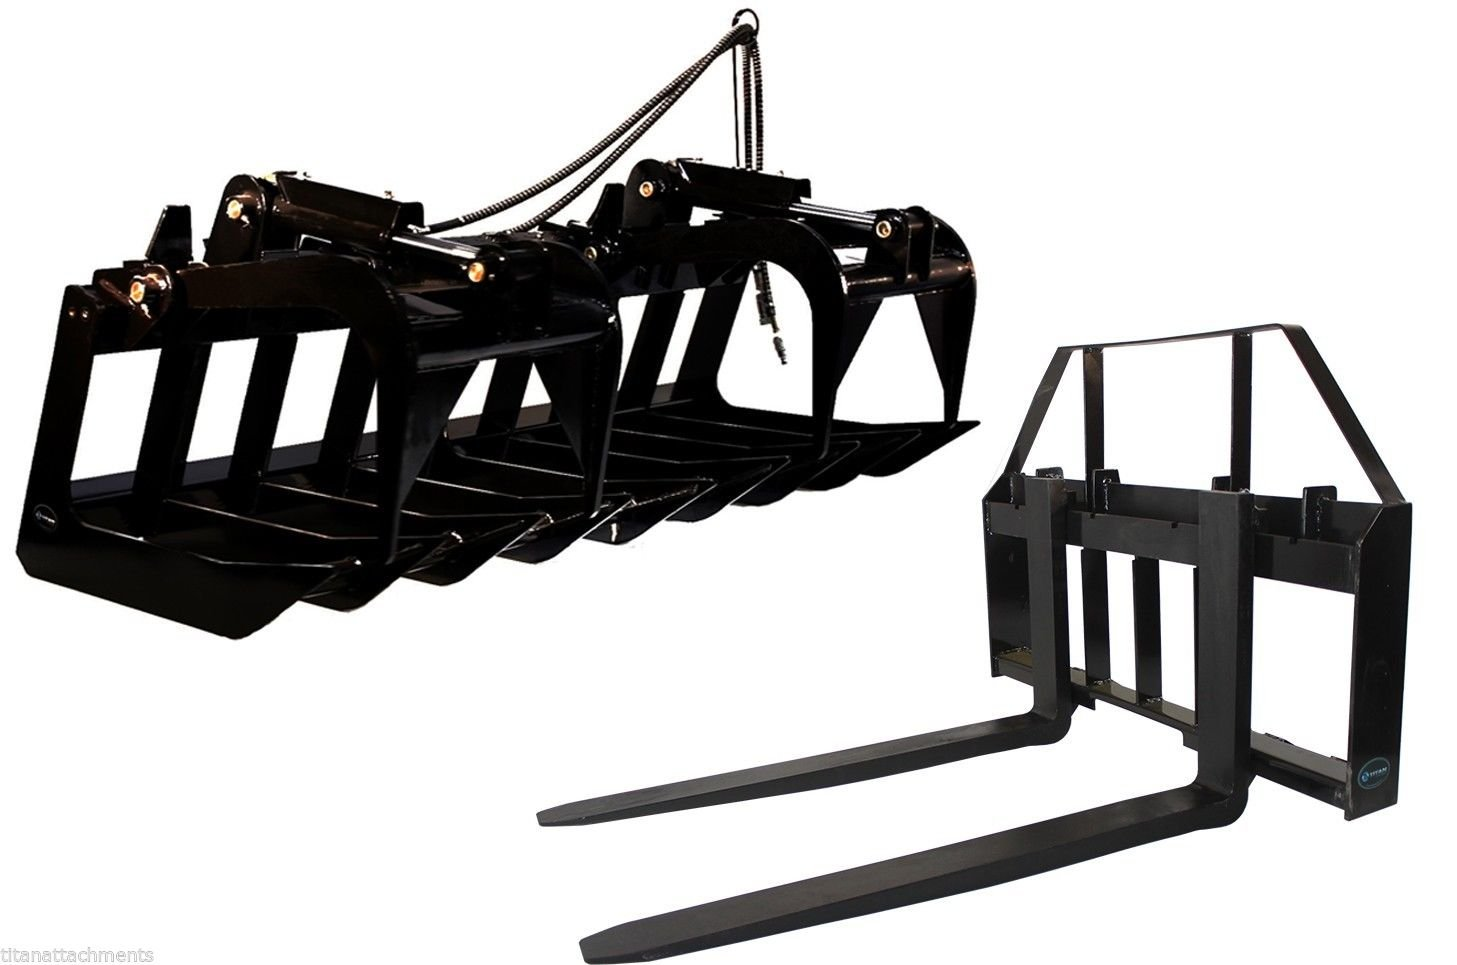 Titan Attachments 60' Root Grapple Bucket & 42 HD Pallet Forks Package Skid Steer Loader Tractor